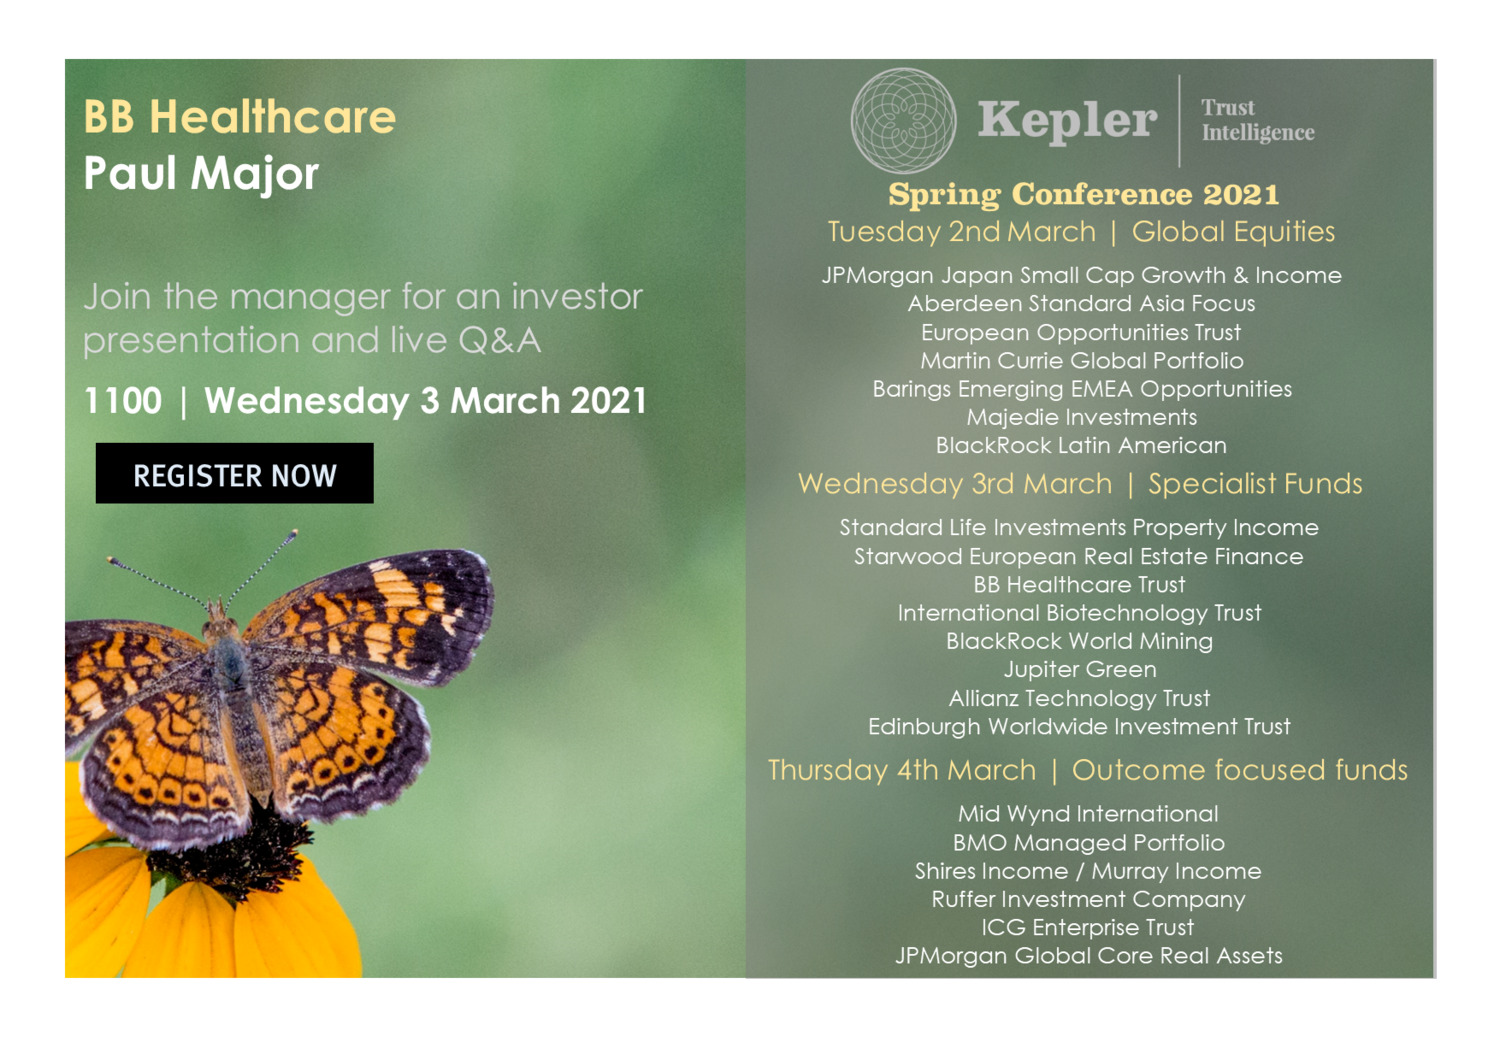 Kepler Spring Conference - BB Healthcare